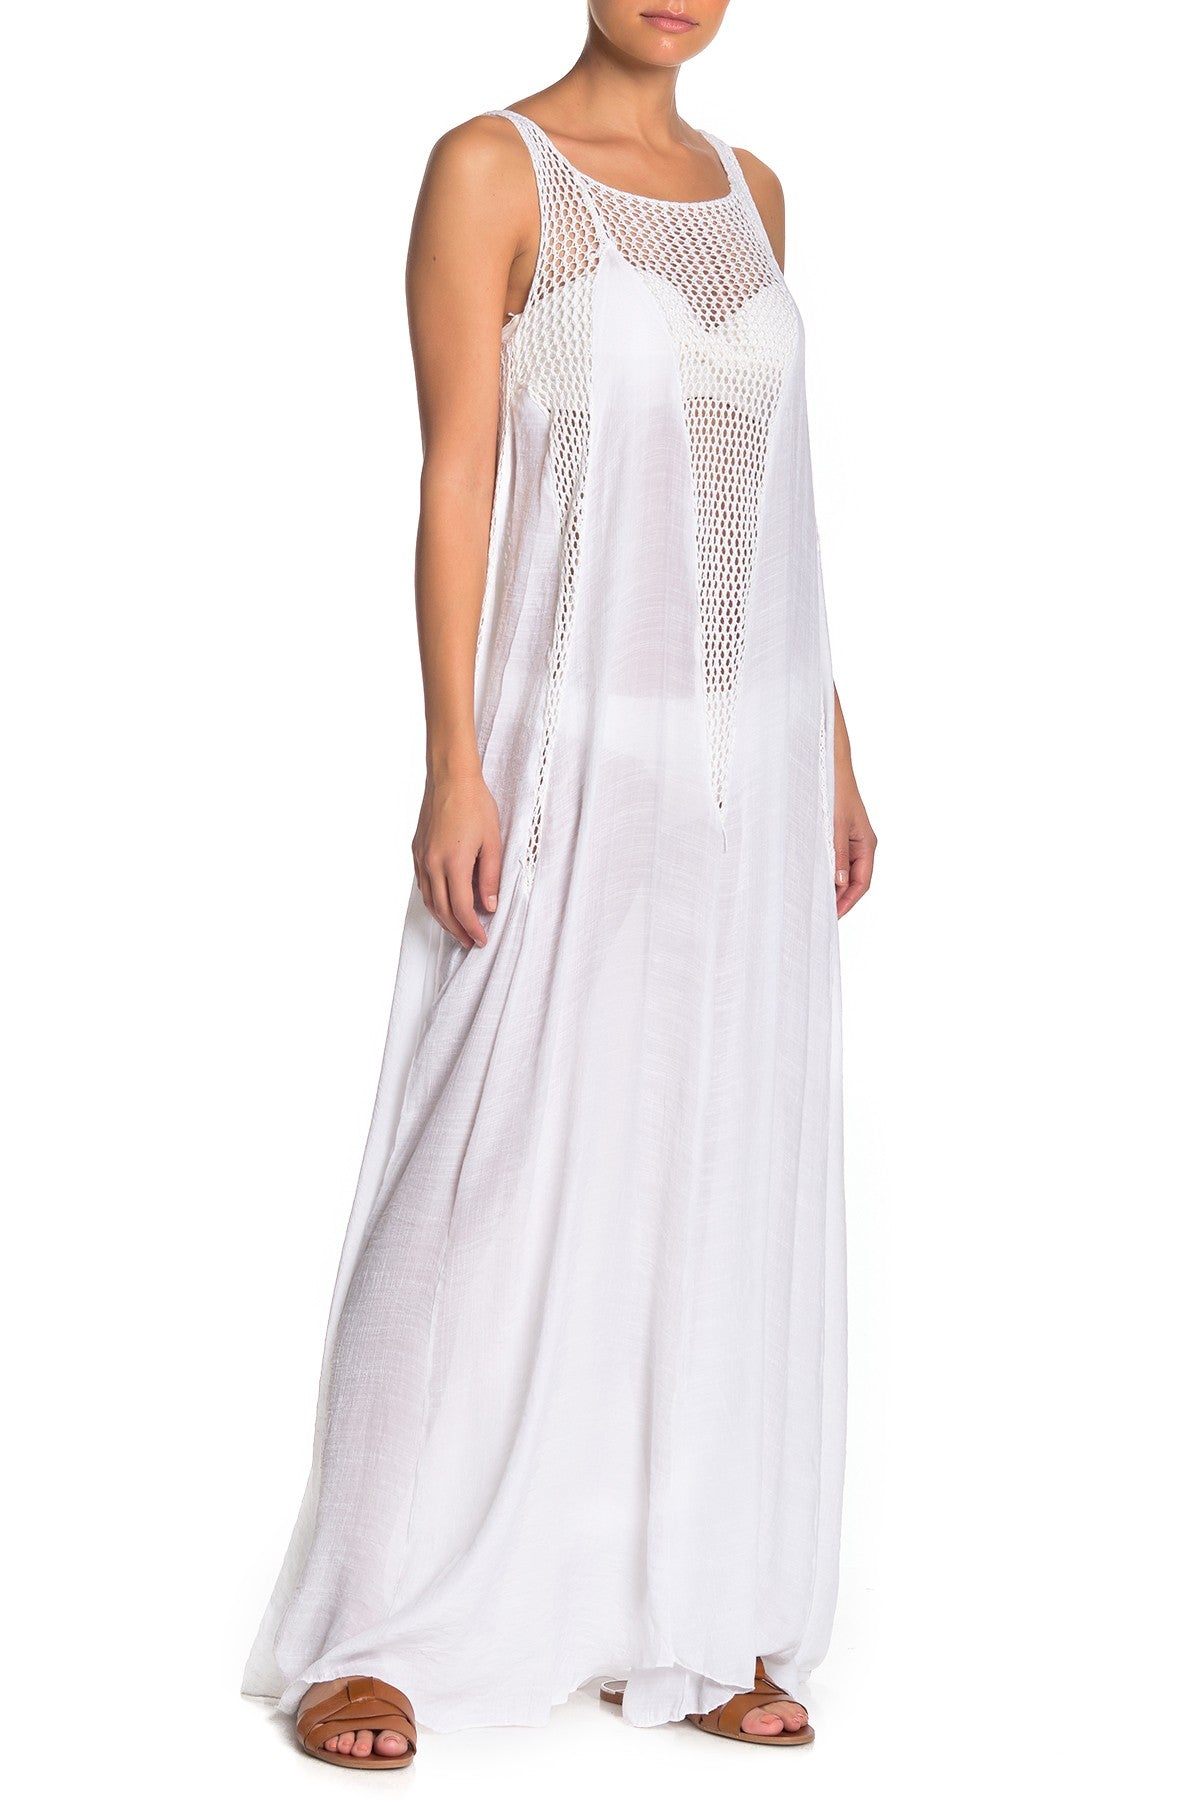 Sleeveless Crochet Dress - White